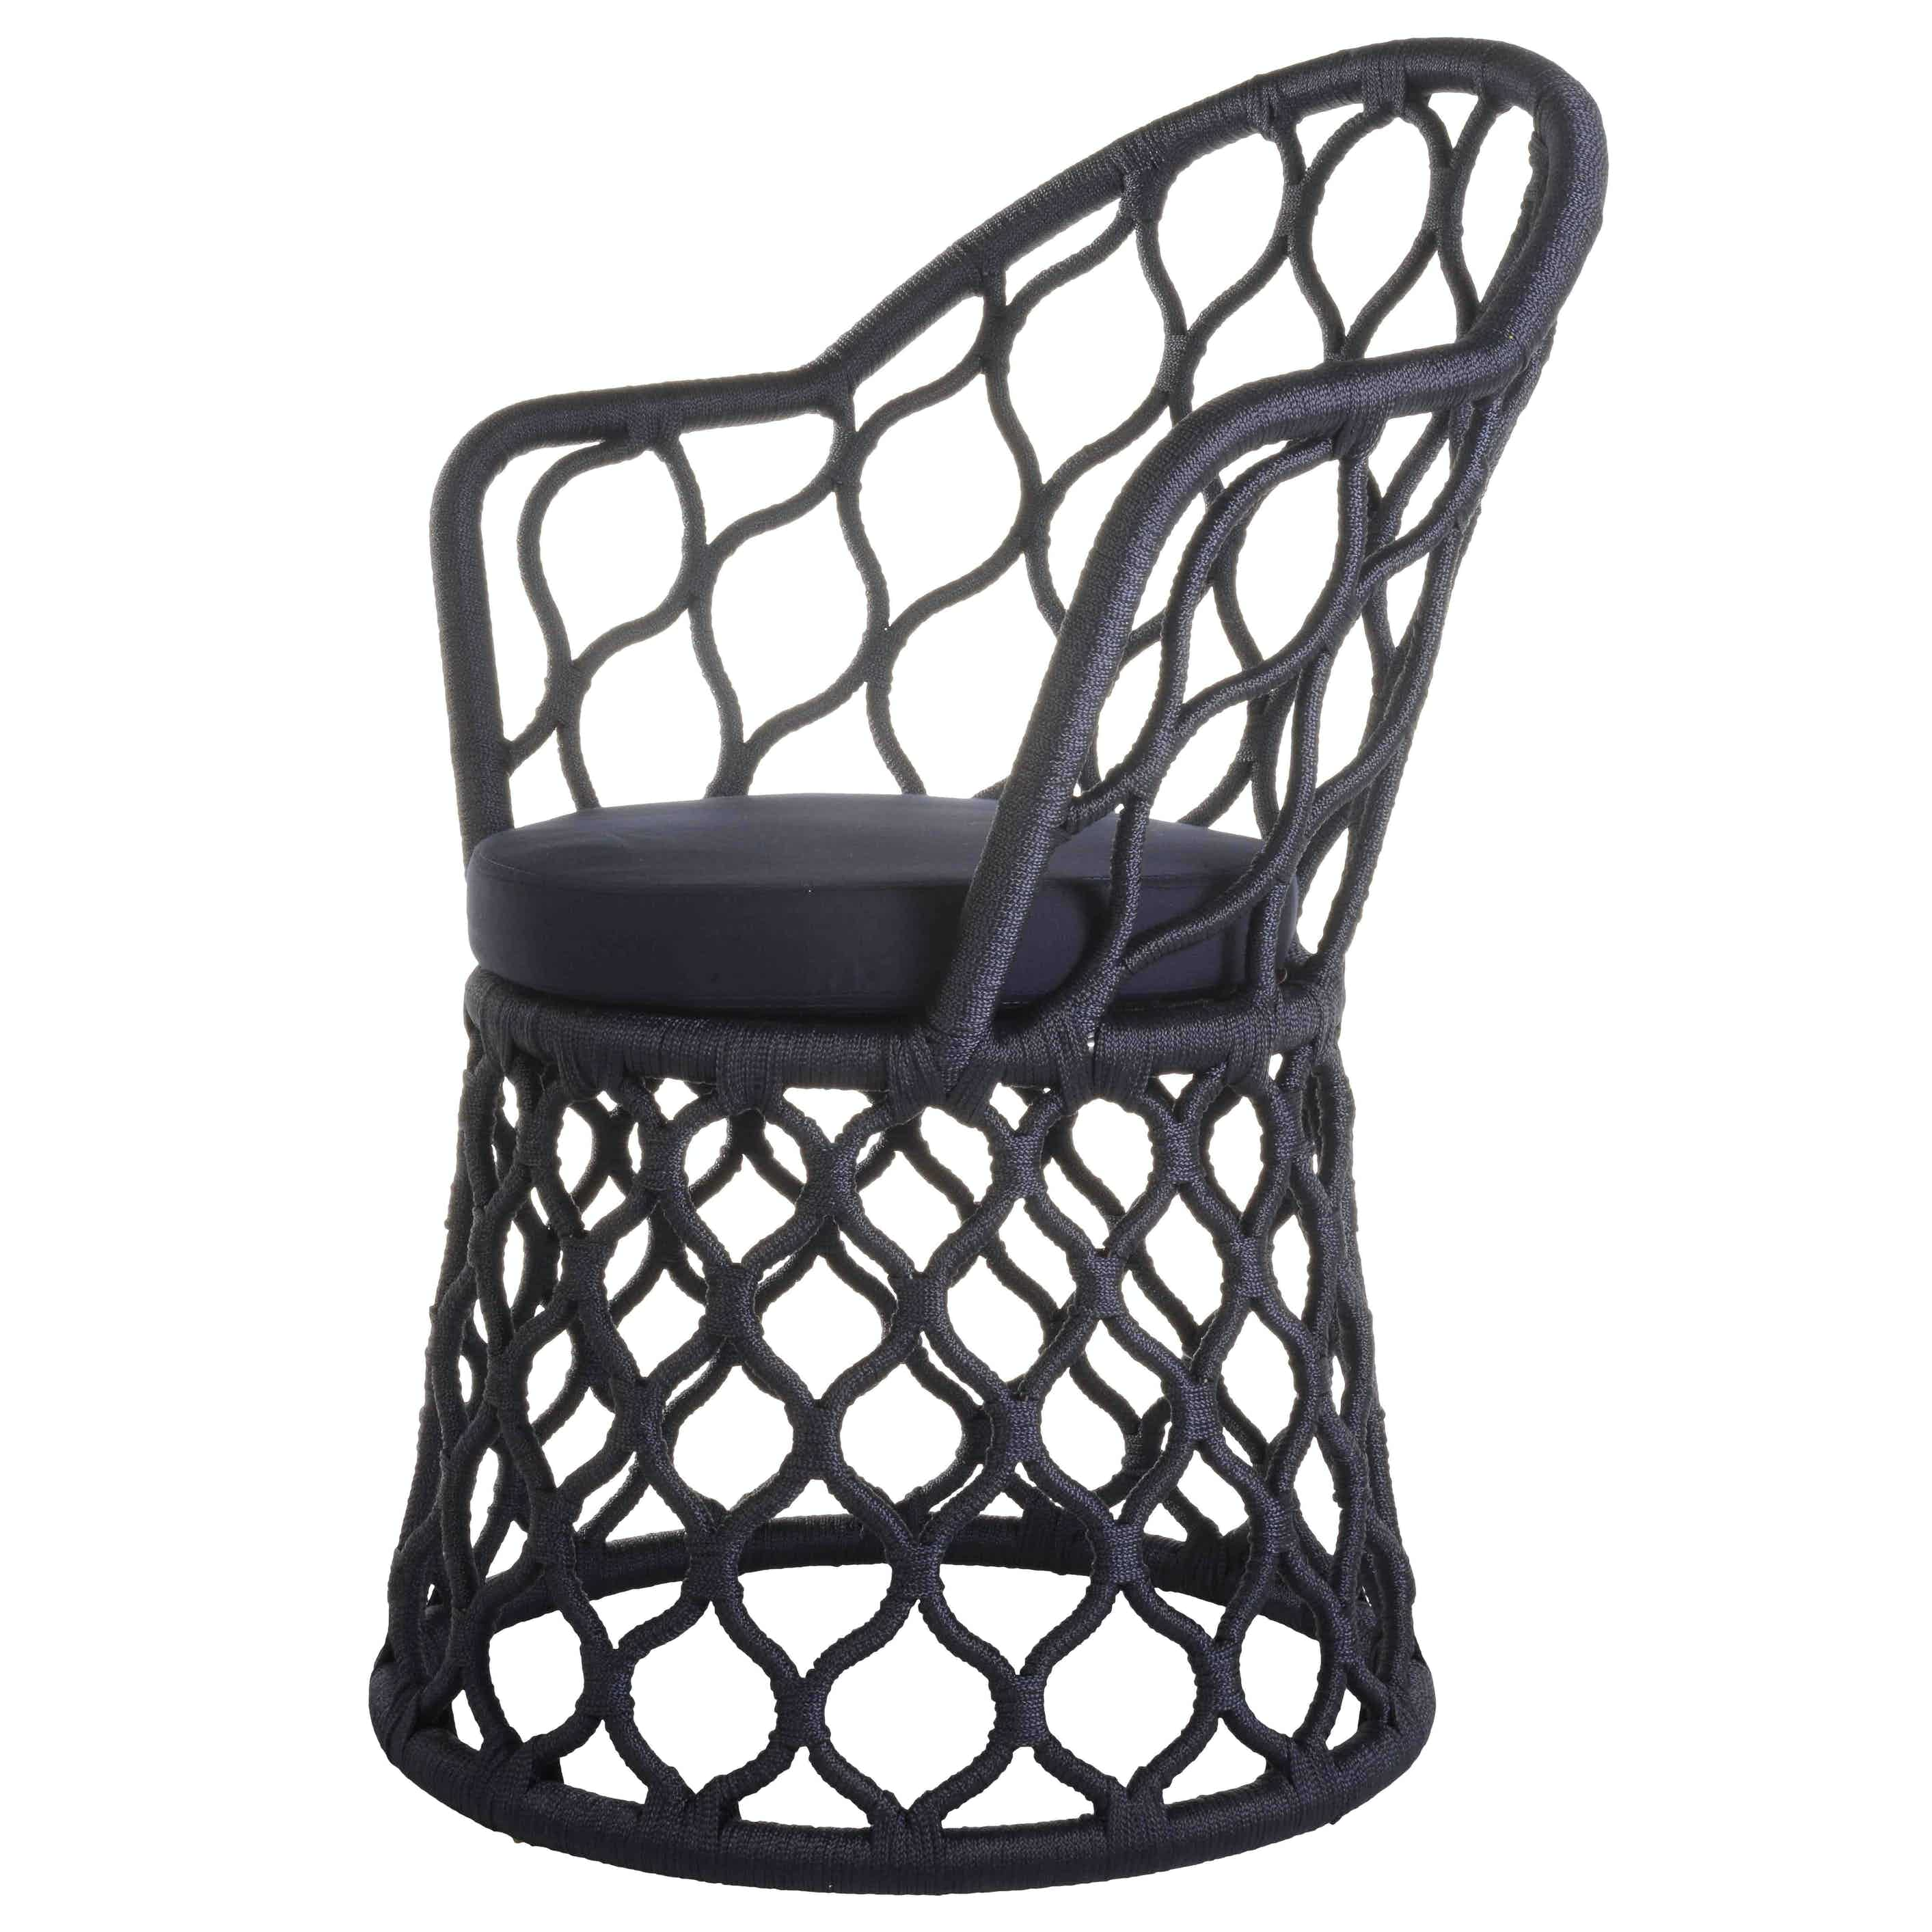 Tidelli painho chair thumbnail haute living